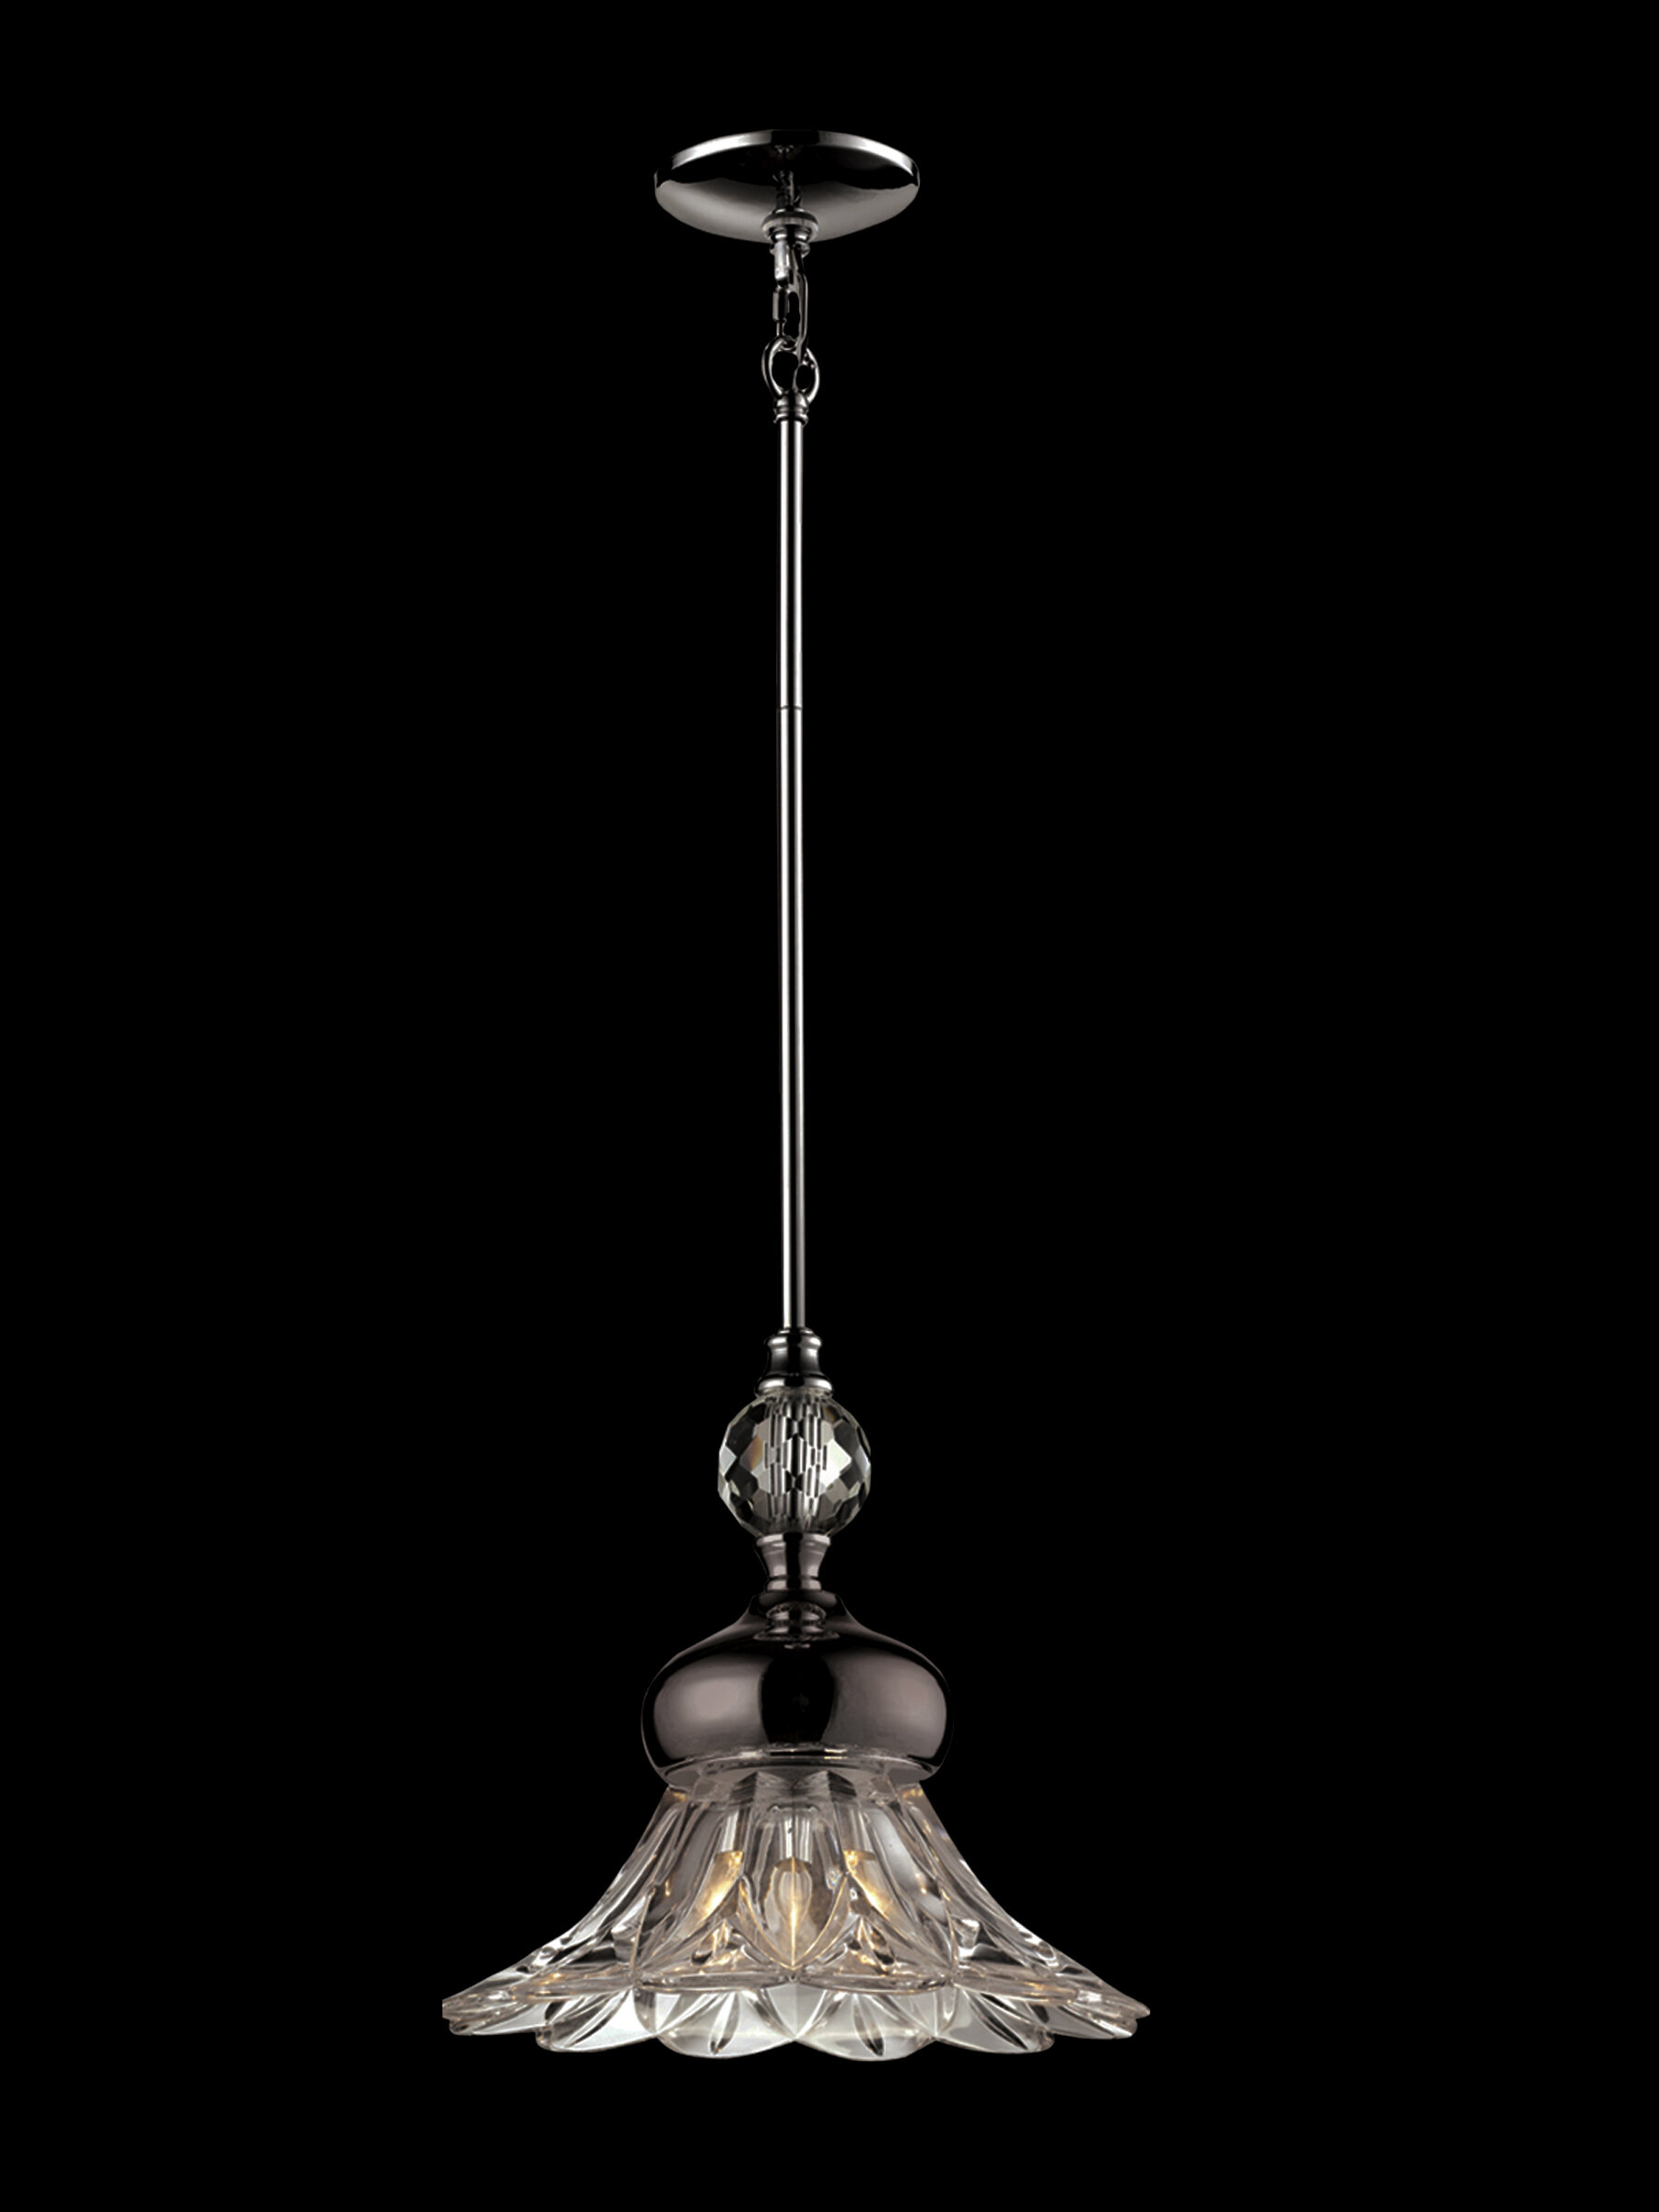 tfast tiffany home all u amazing table of crystal dale about clearance clubanficom stunning ideas lamps photos and new lamp trend design